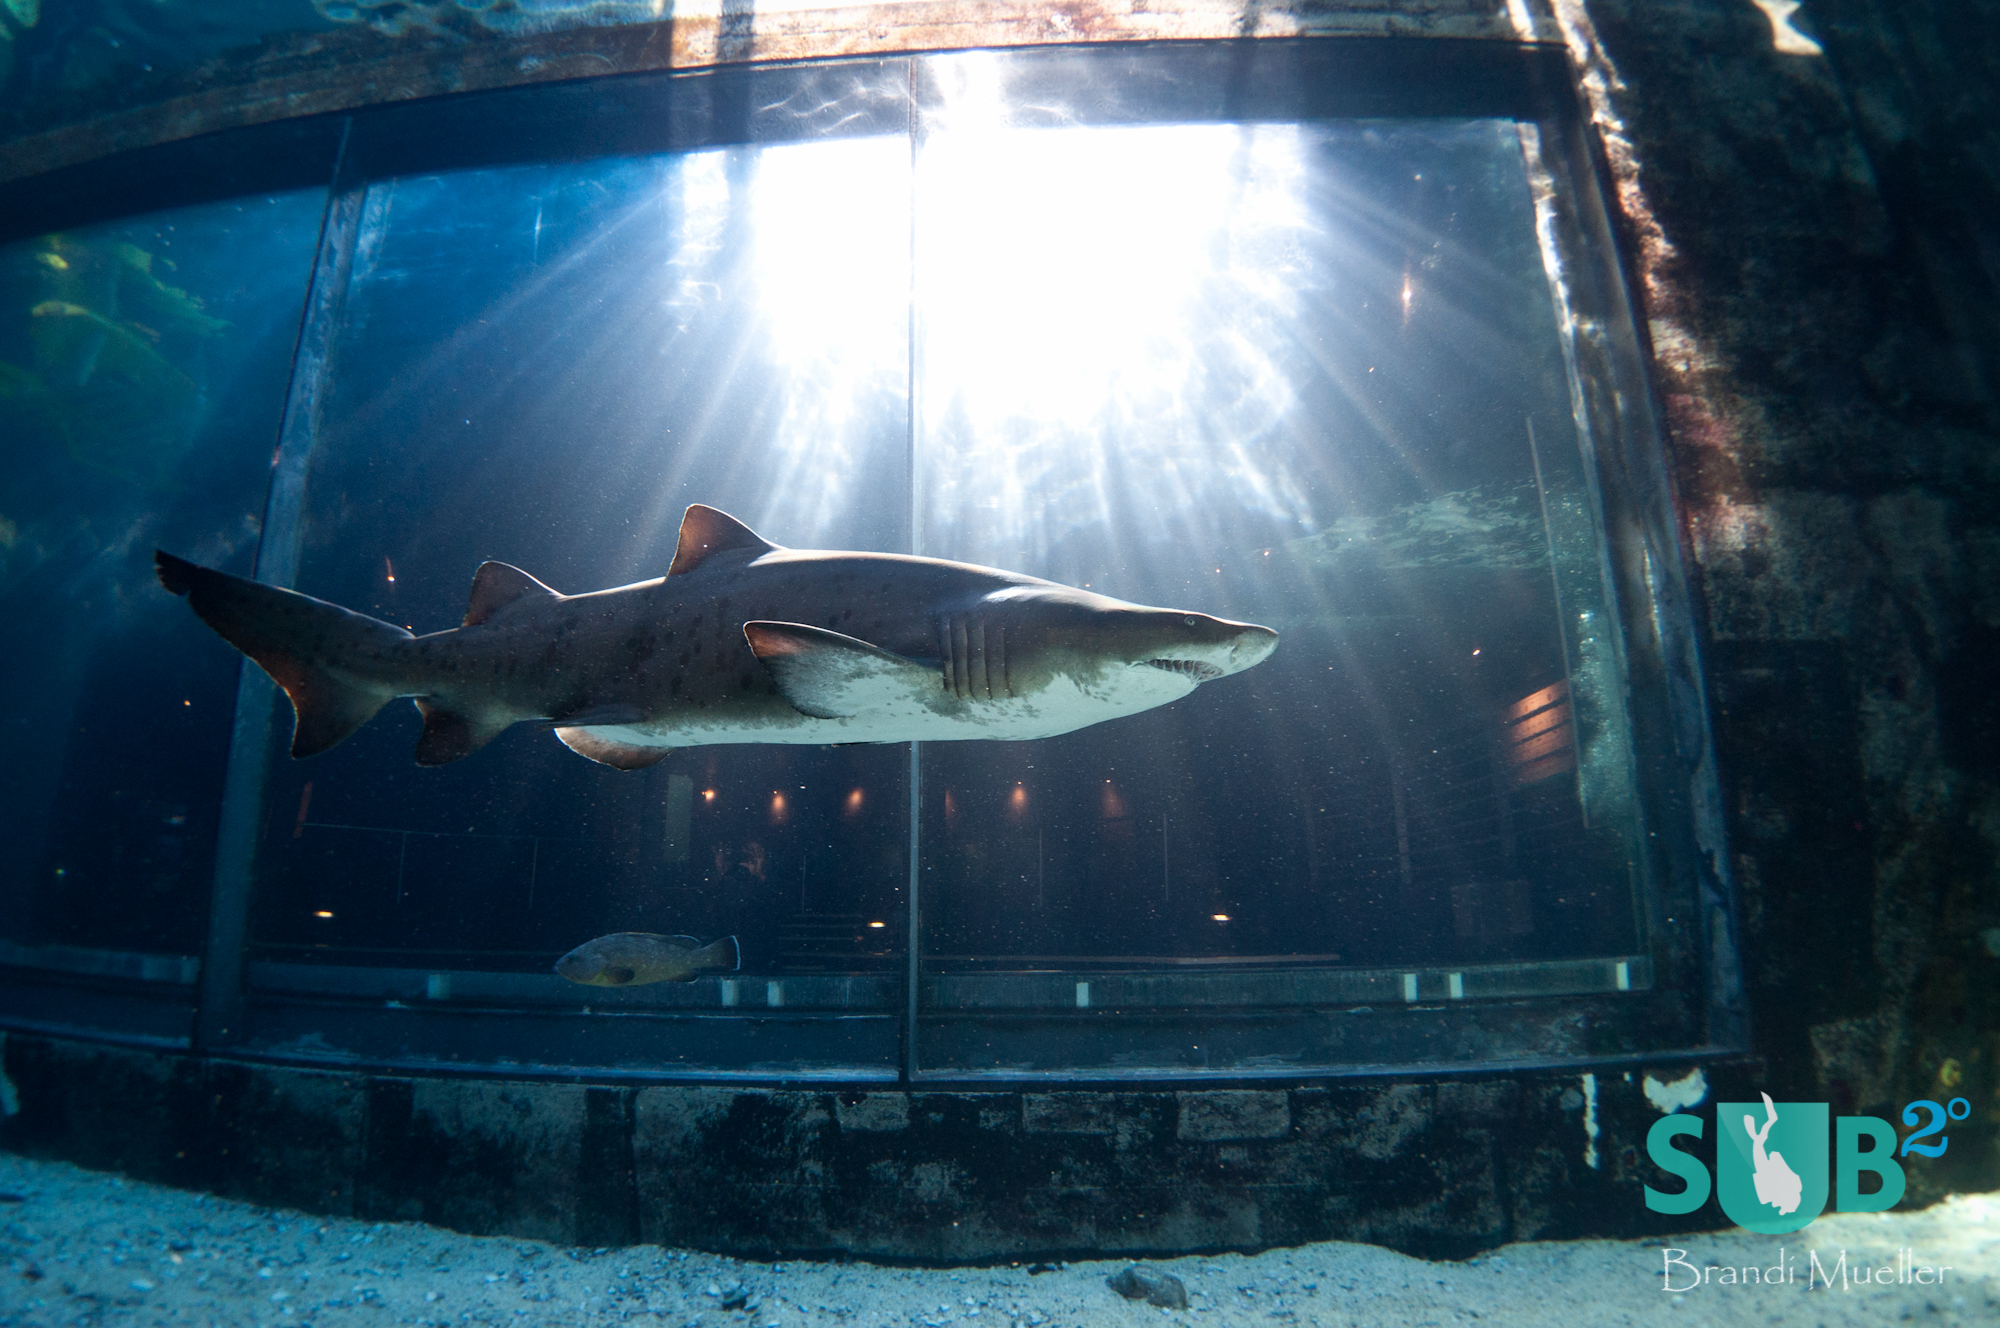 A ragged-tooth shark passes in front of the viewing area of the Predator Exhibit at Two Ocean Aquaruim.